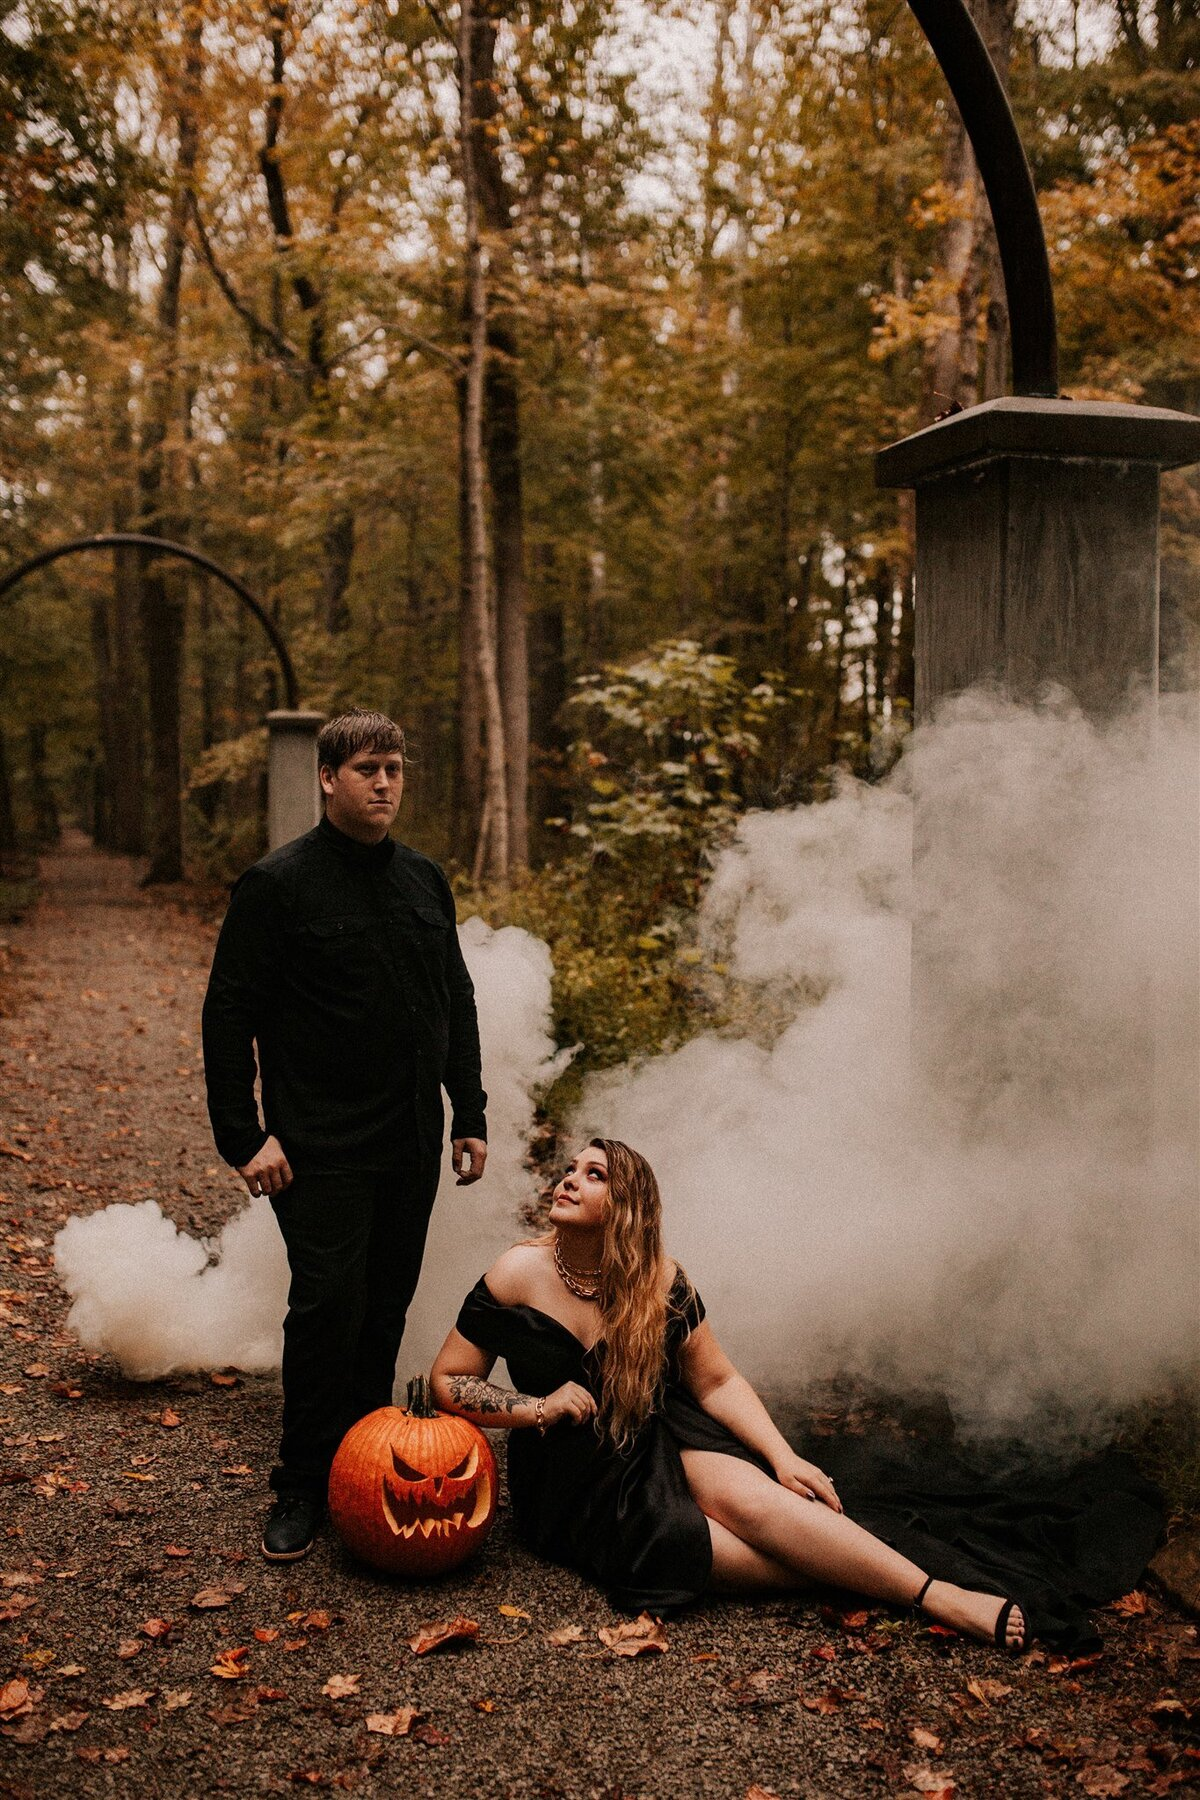 Brizzy-Rose-and-Emma-Rose-Island-Charlestown-Spoopy-Engagement-Session-18